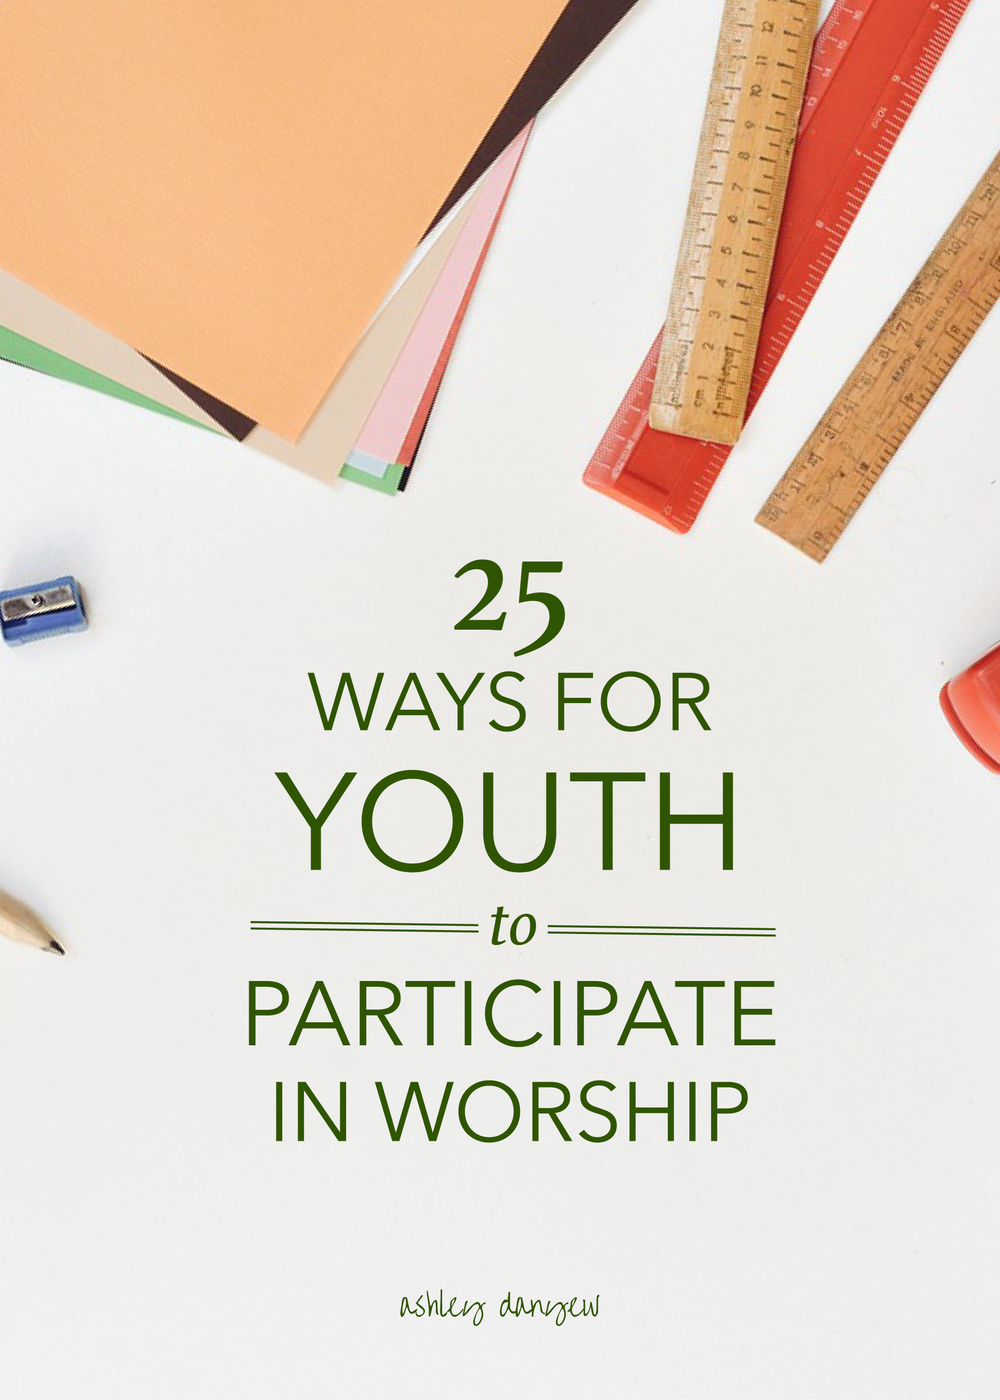 25 Ways for Youth to Participate in Worship-01.png